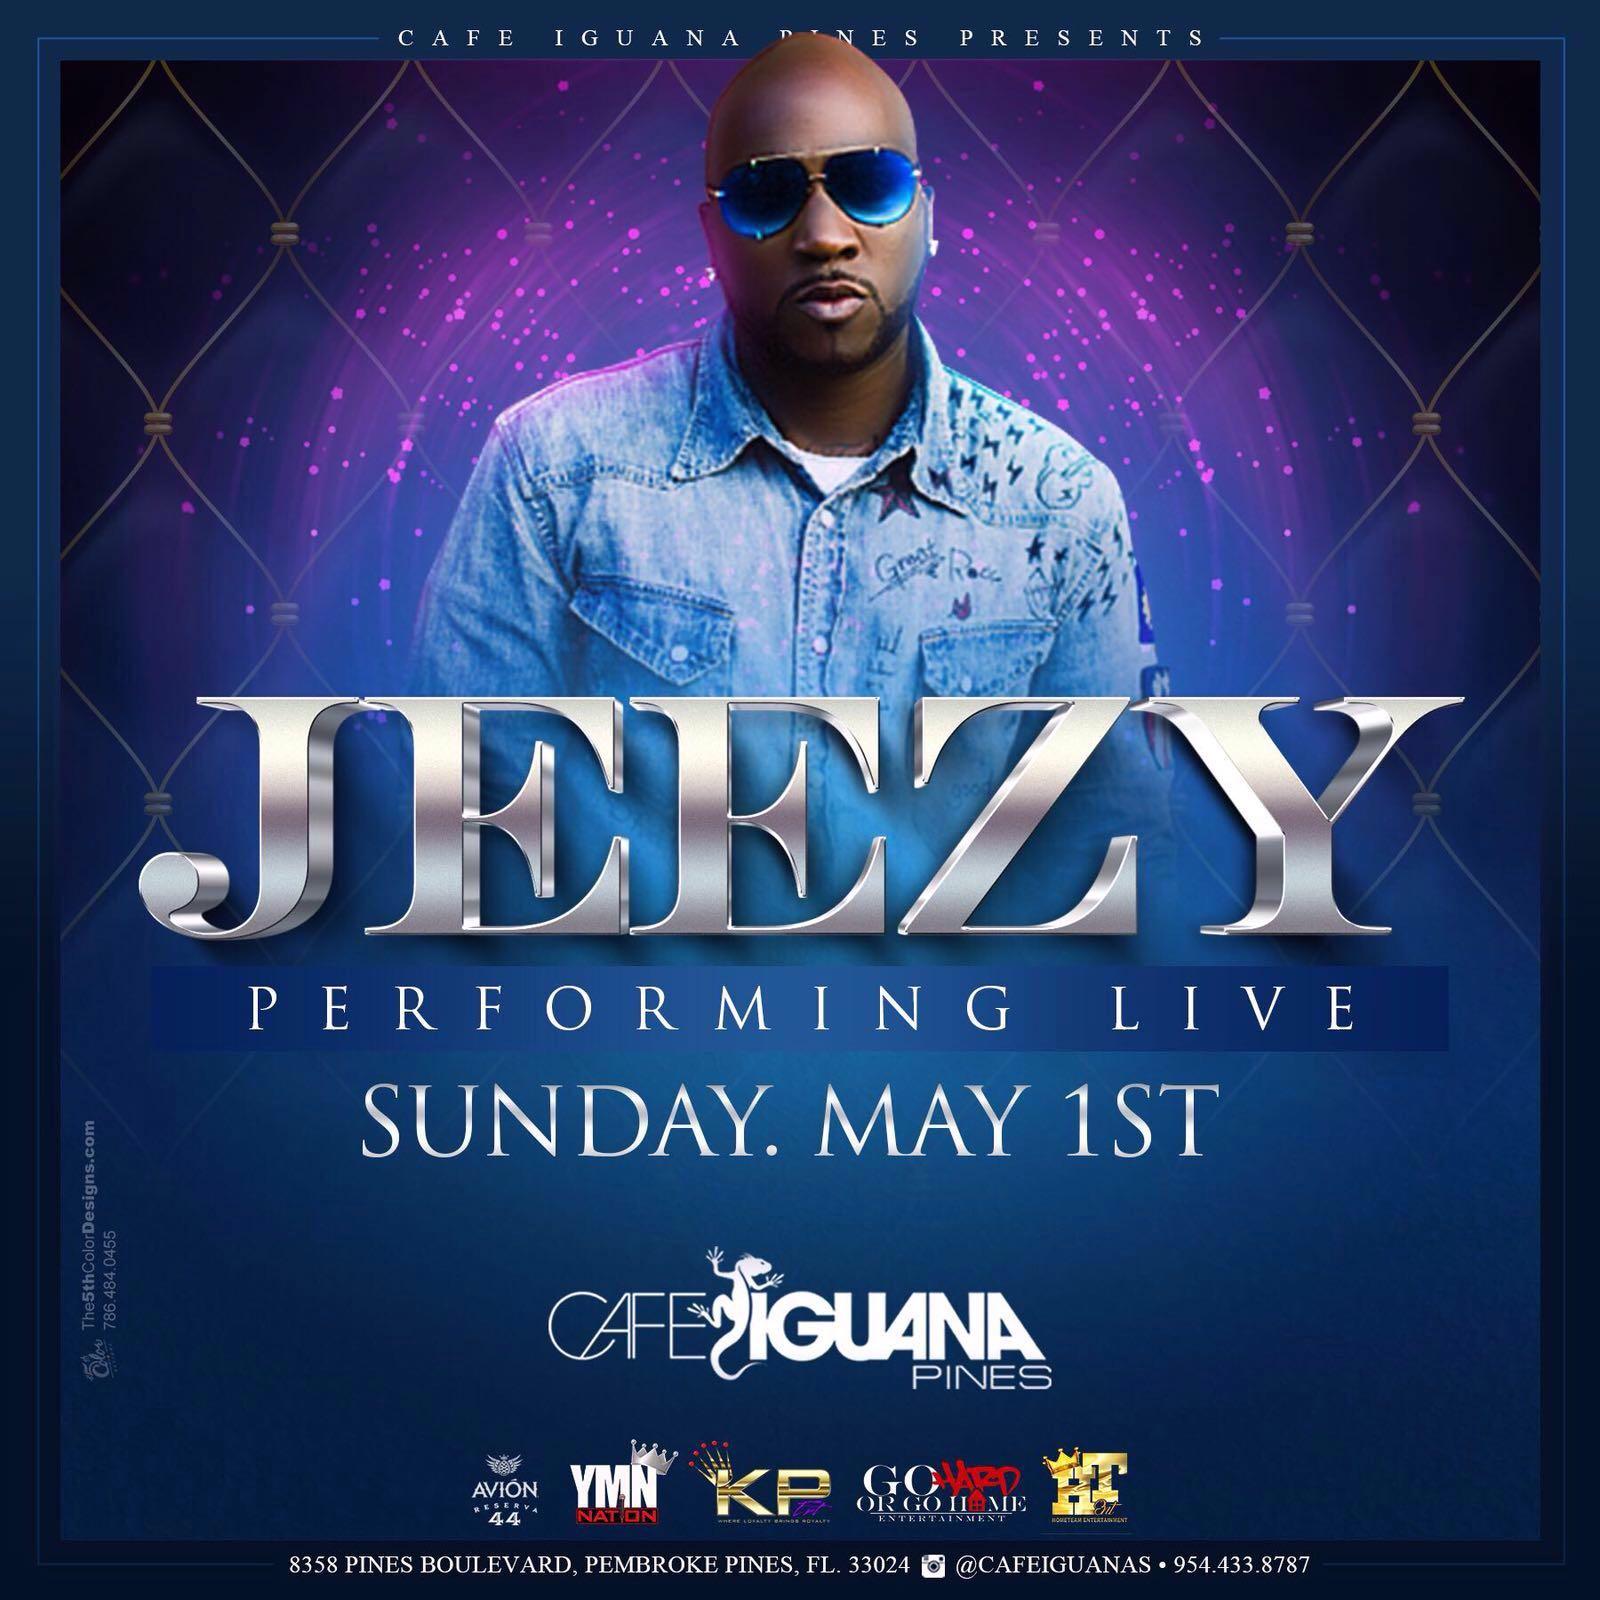 Jeezy Performing Live At Cafeiguanas On May 1st